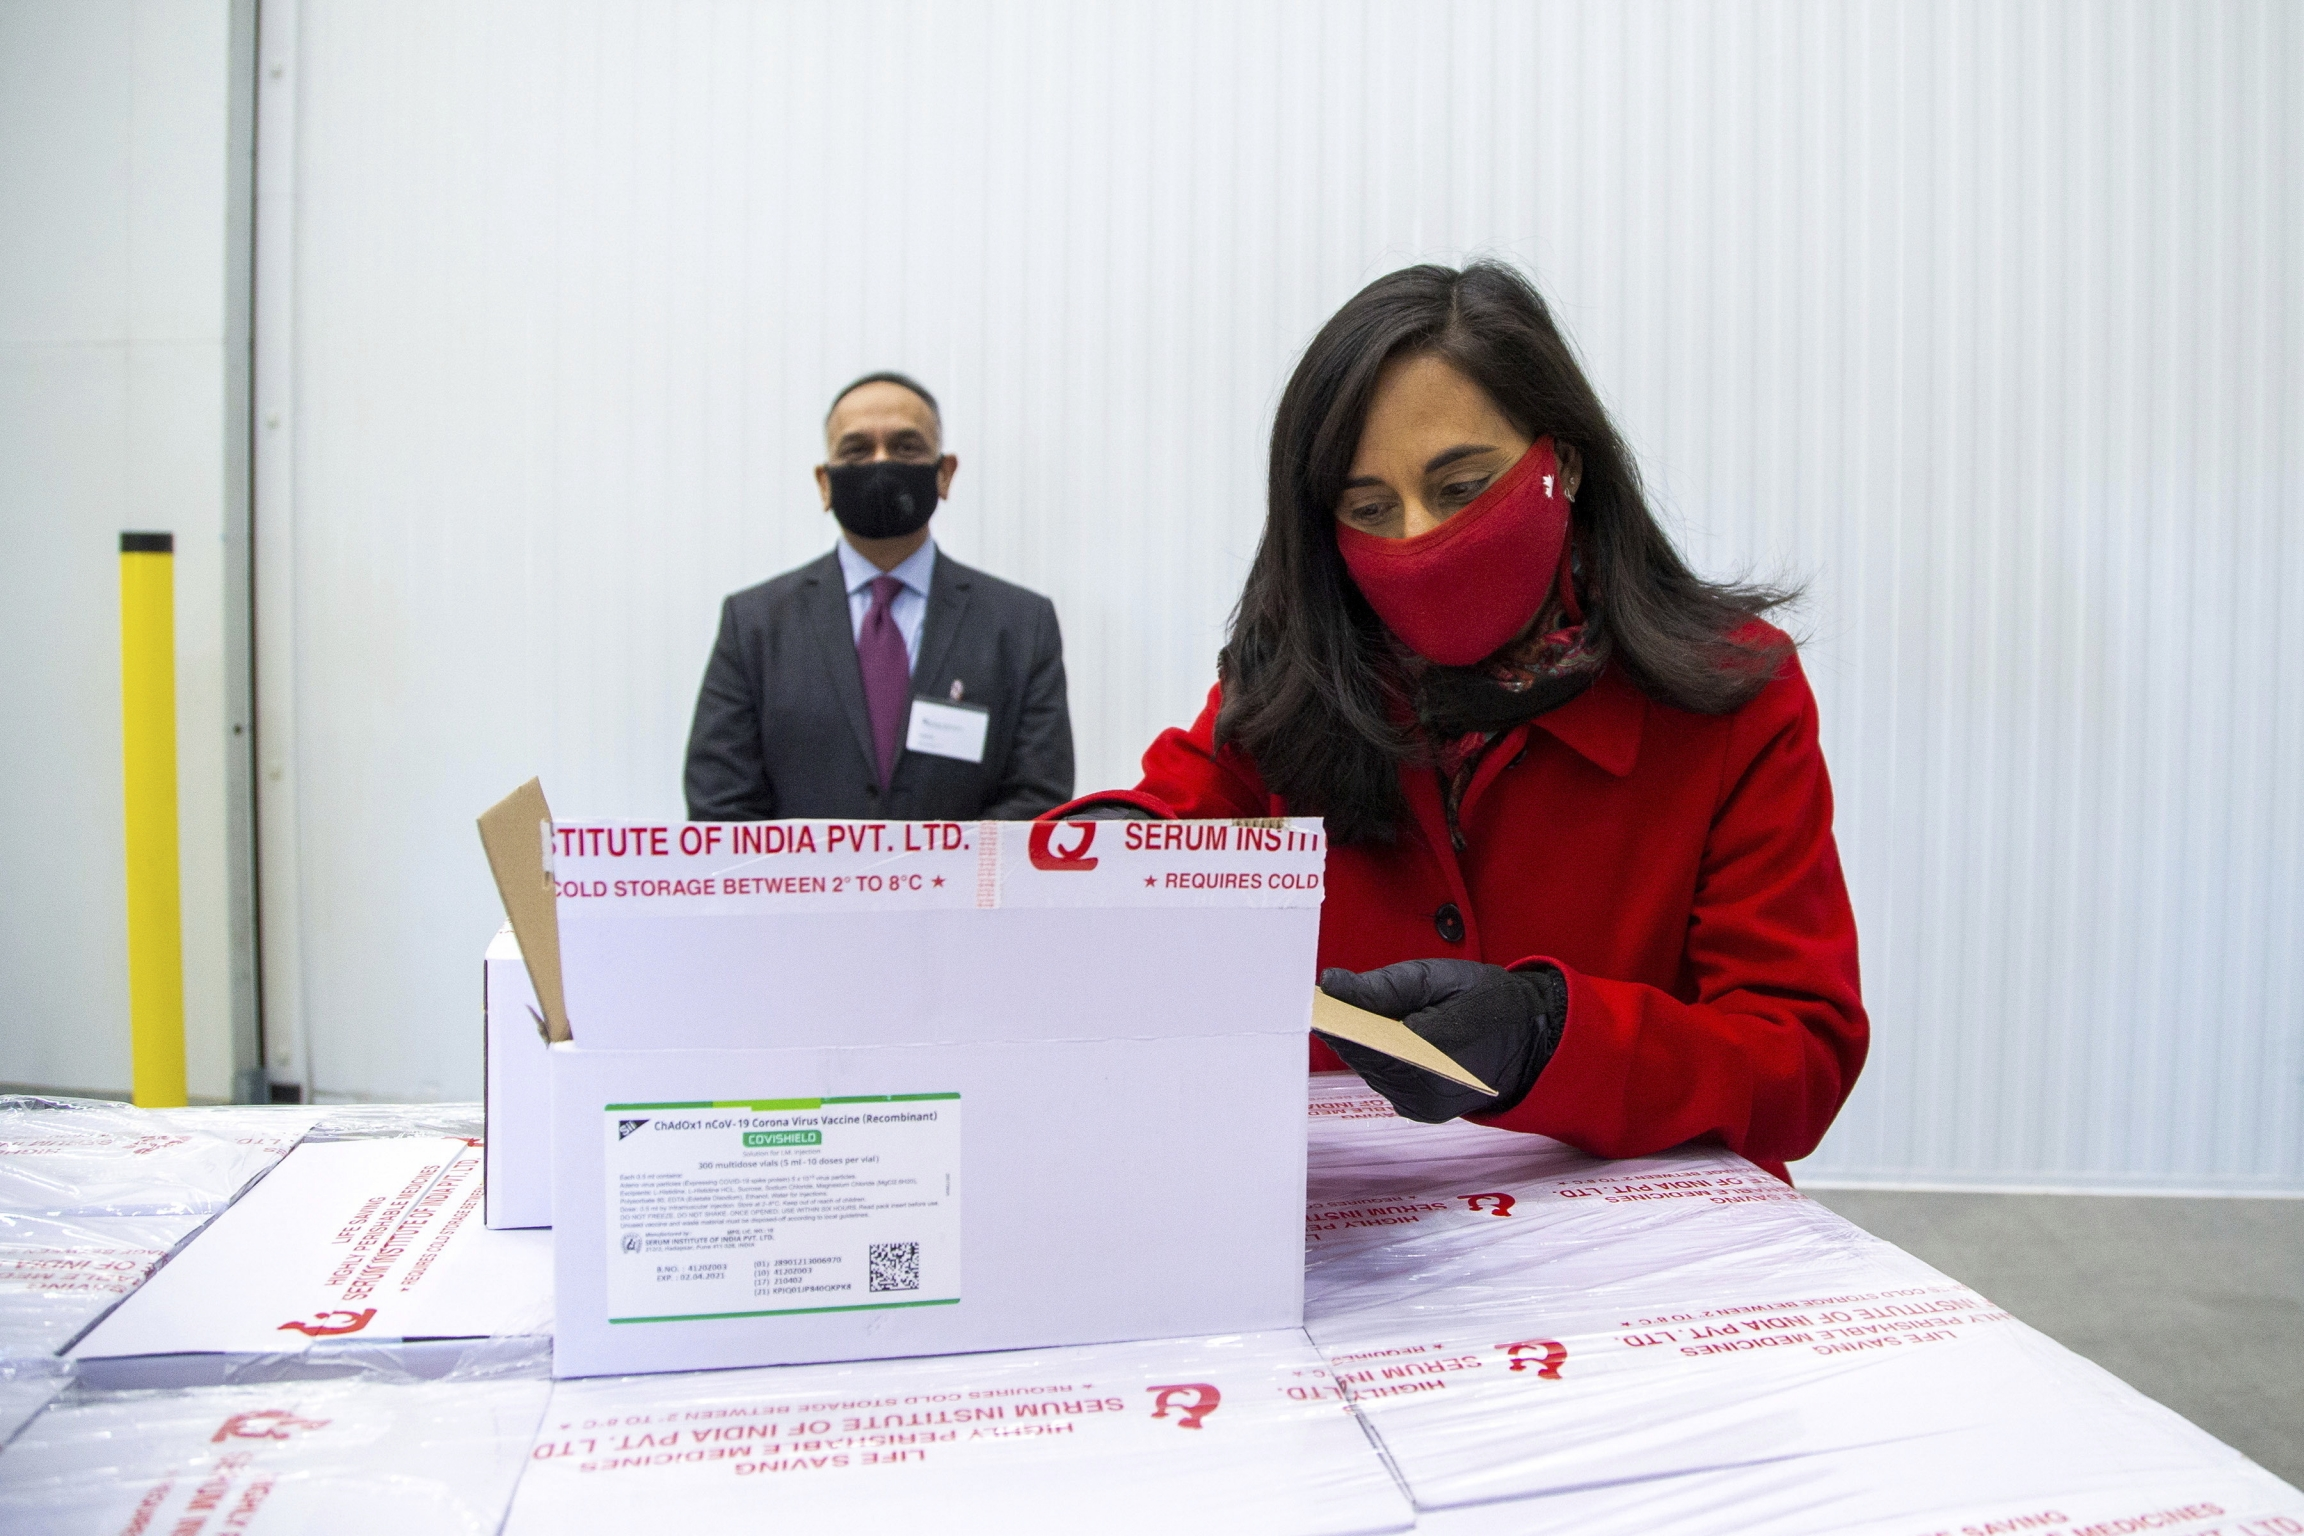 Anita Anand, Canada's Minister of Public Services and Procurement opens a box with some of the AstraZeneca COVID-19 vaccine doses that Canada has secured through a deal with the Serum Institute of India in partnership with Verity Pharma at a facility in M